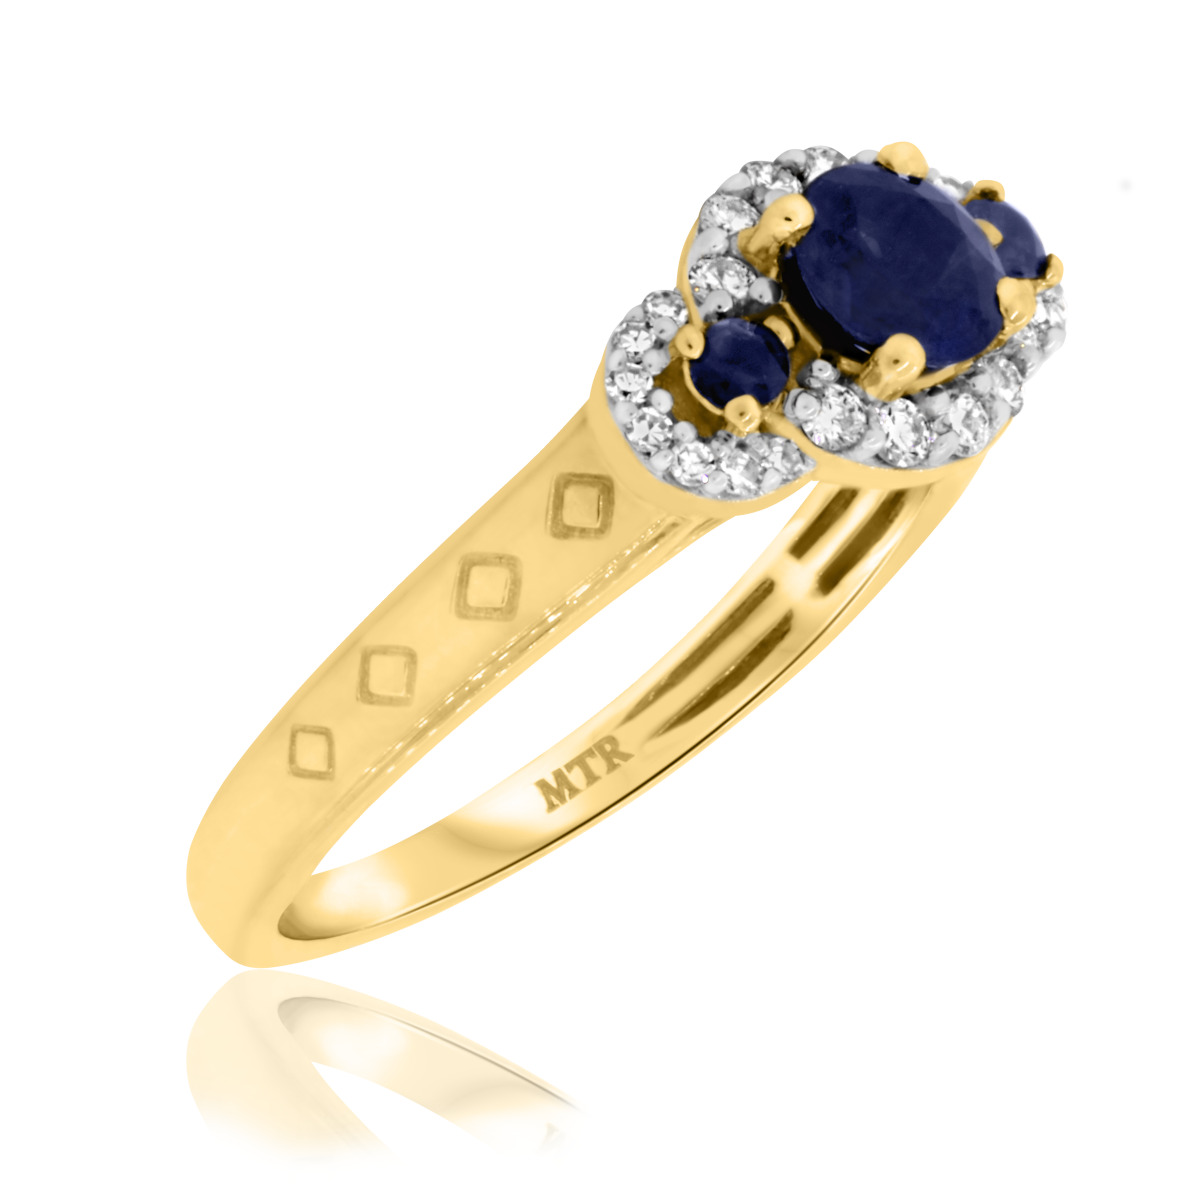 7/8 Carat T.W. Sapphire Engagement Ring 10K Yellow Gold